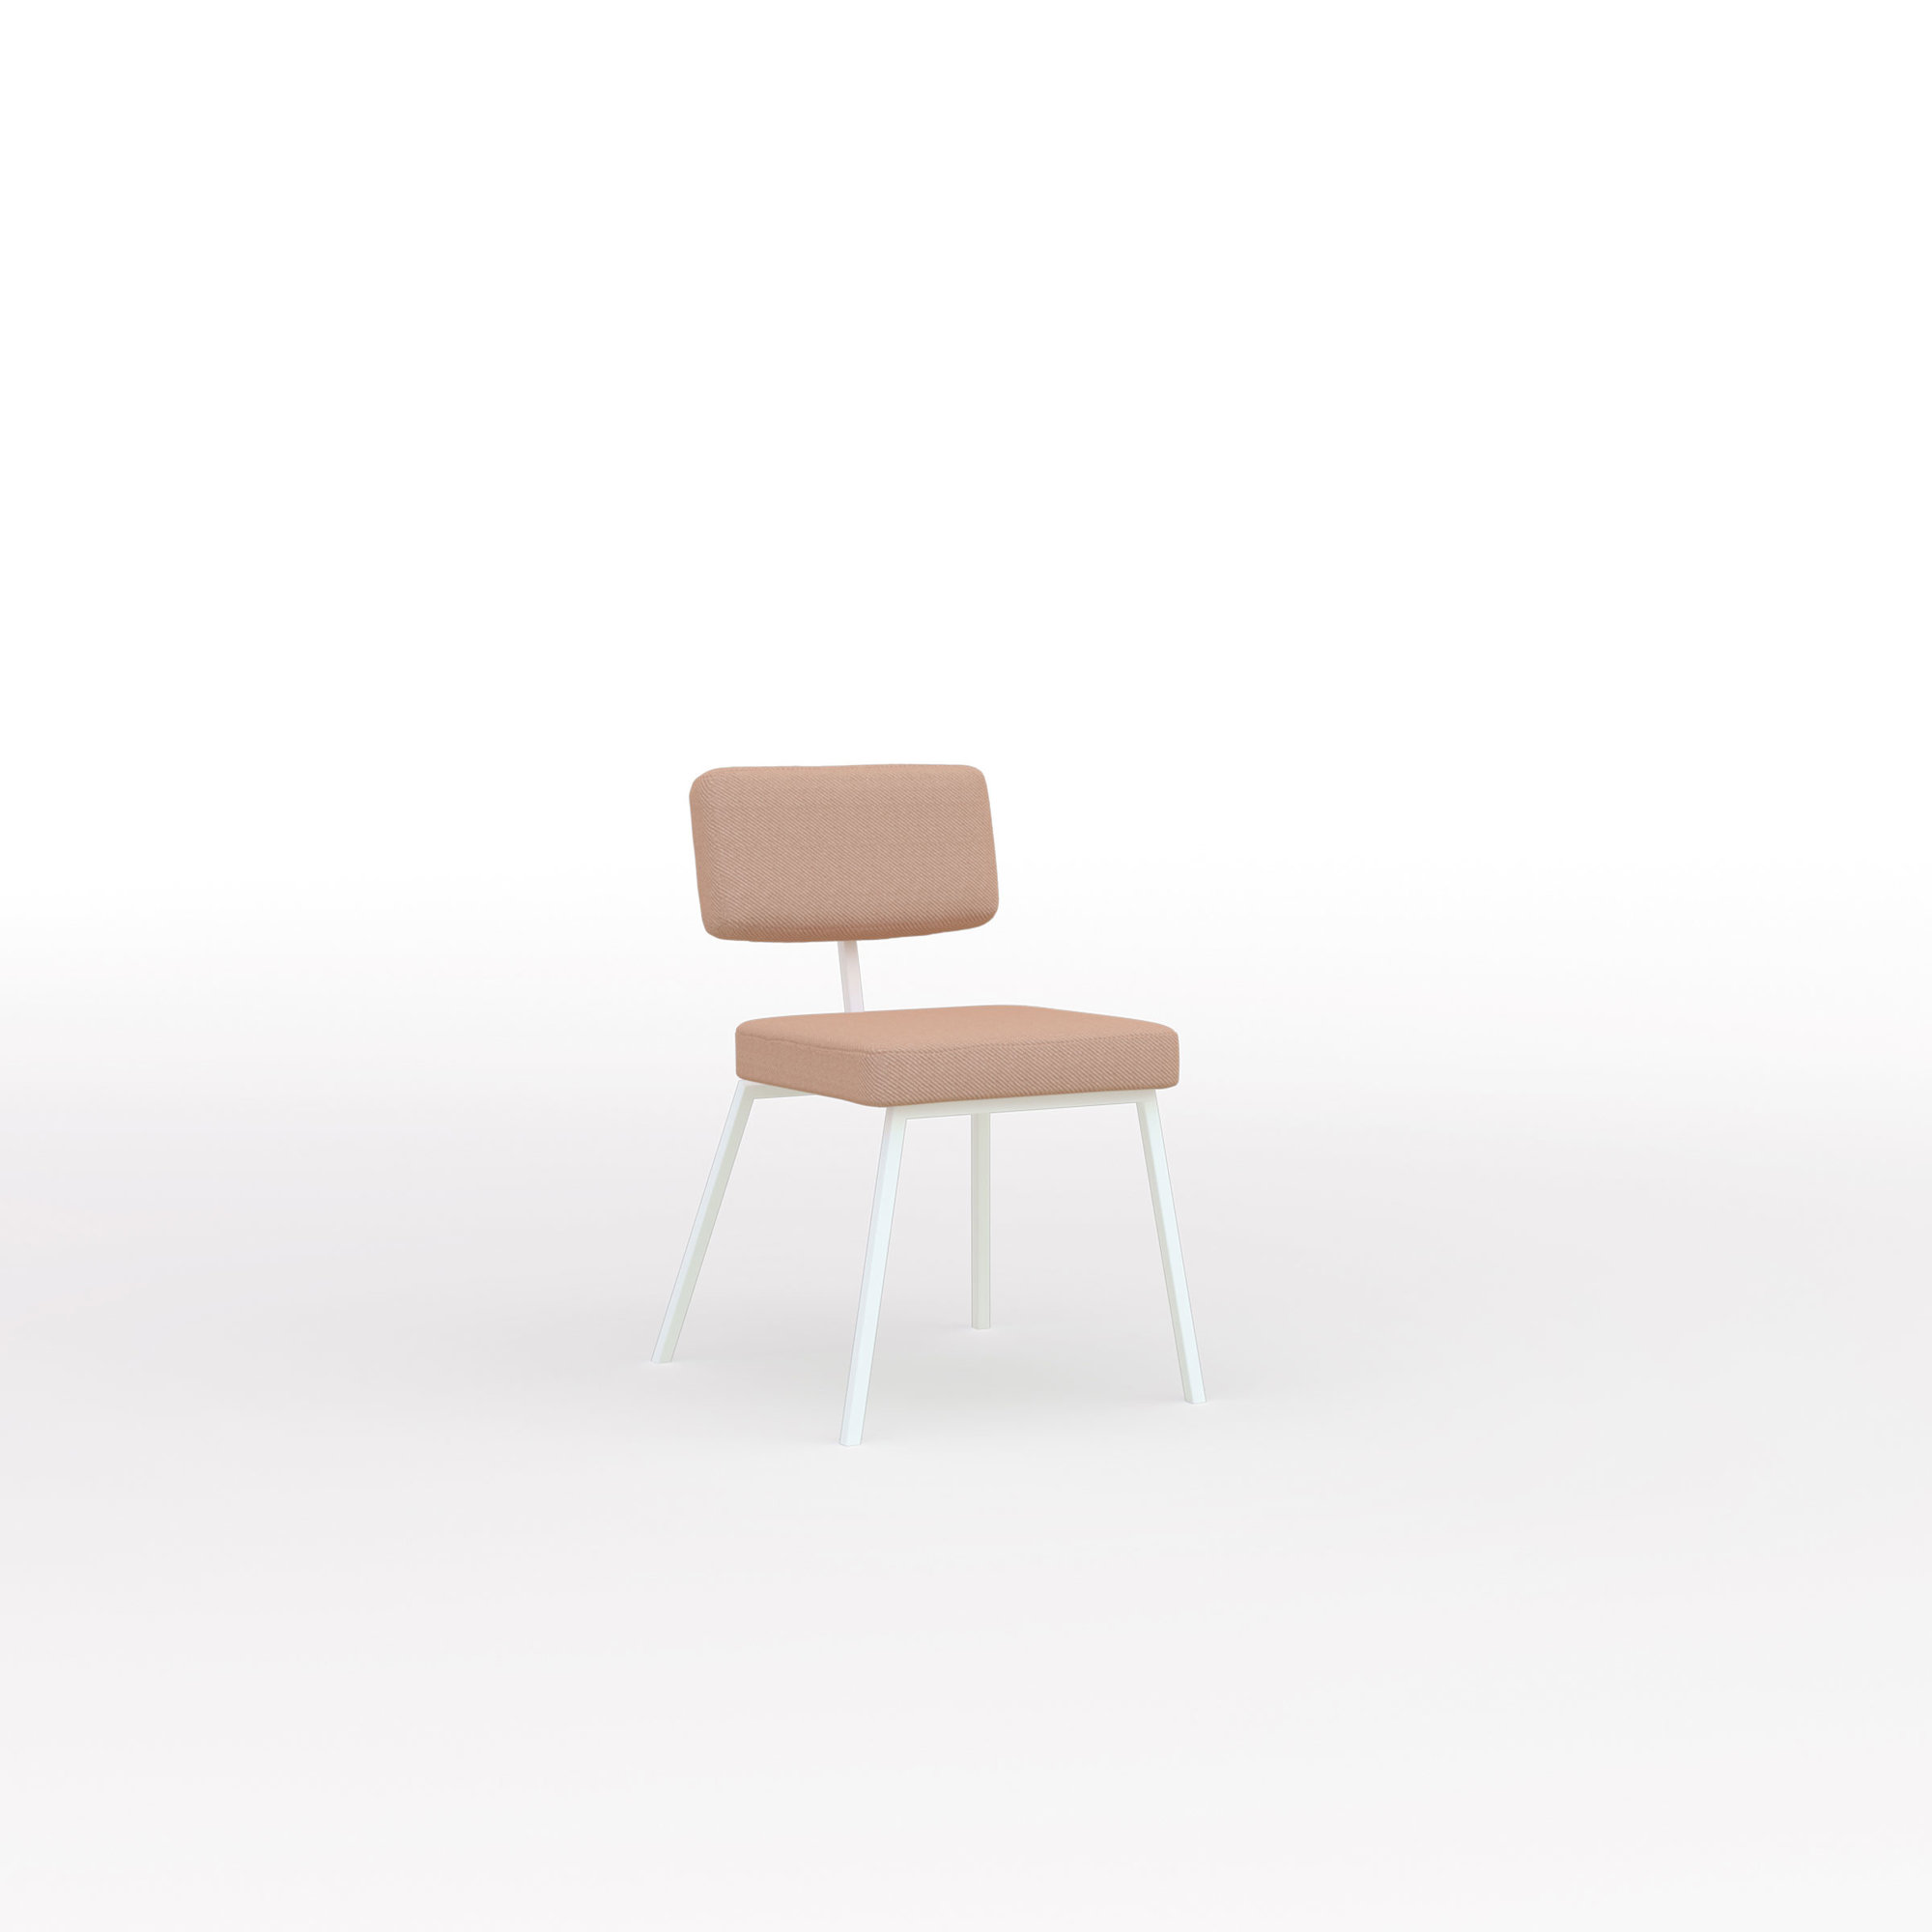 Design eetkamerstoel | Ode Chair without armrest steelcuttrio3 636 | Studio HENK | Listing_image